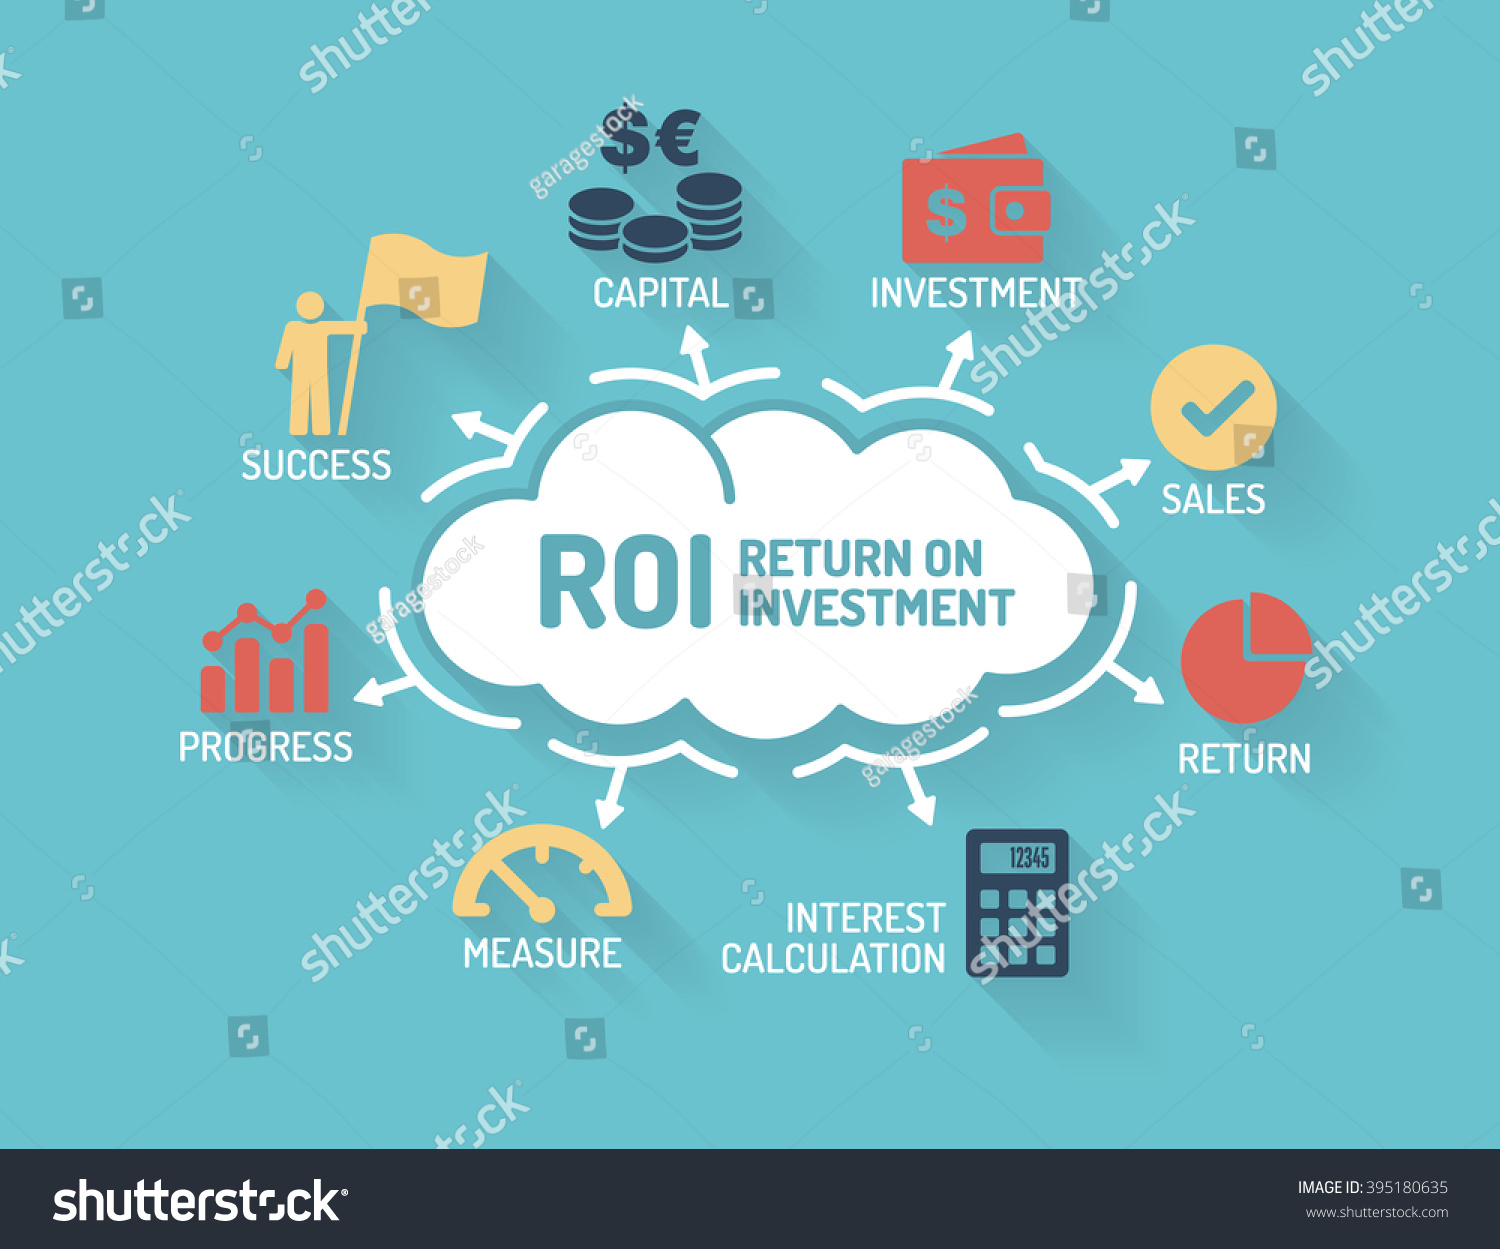 how to get 5 return on investment